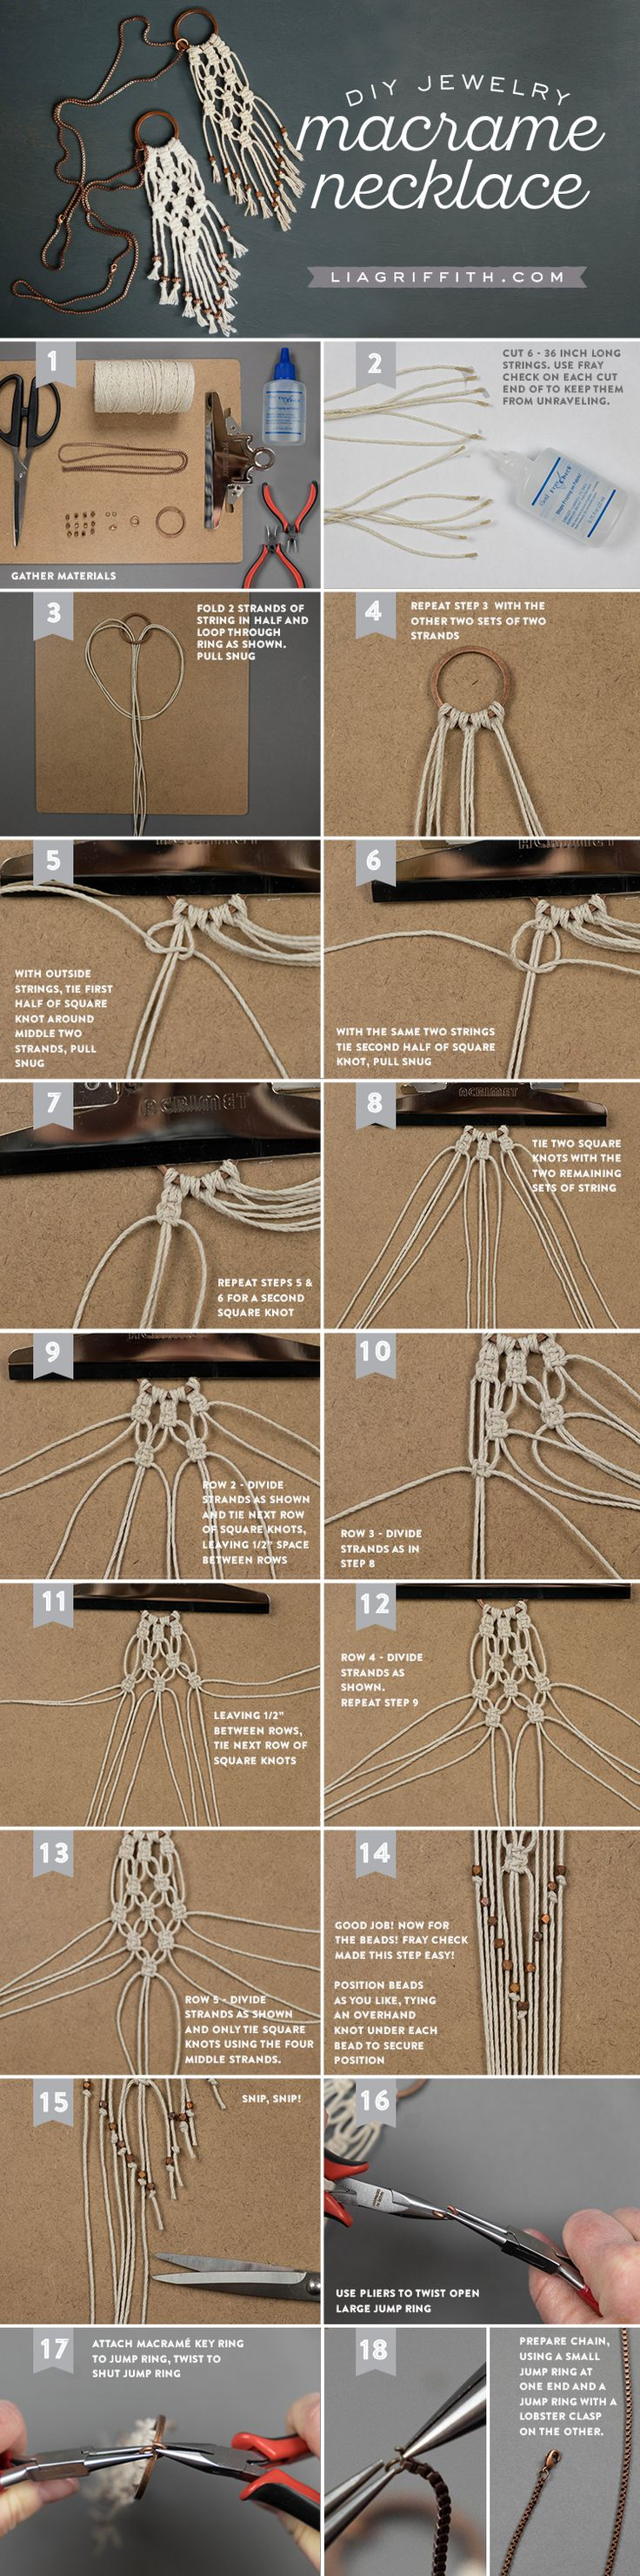 DIY Macrame Necklace tutorial from MichaelsMakers  Lia Griffith